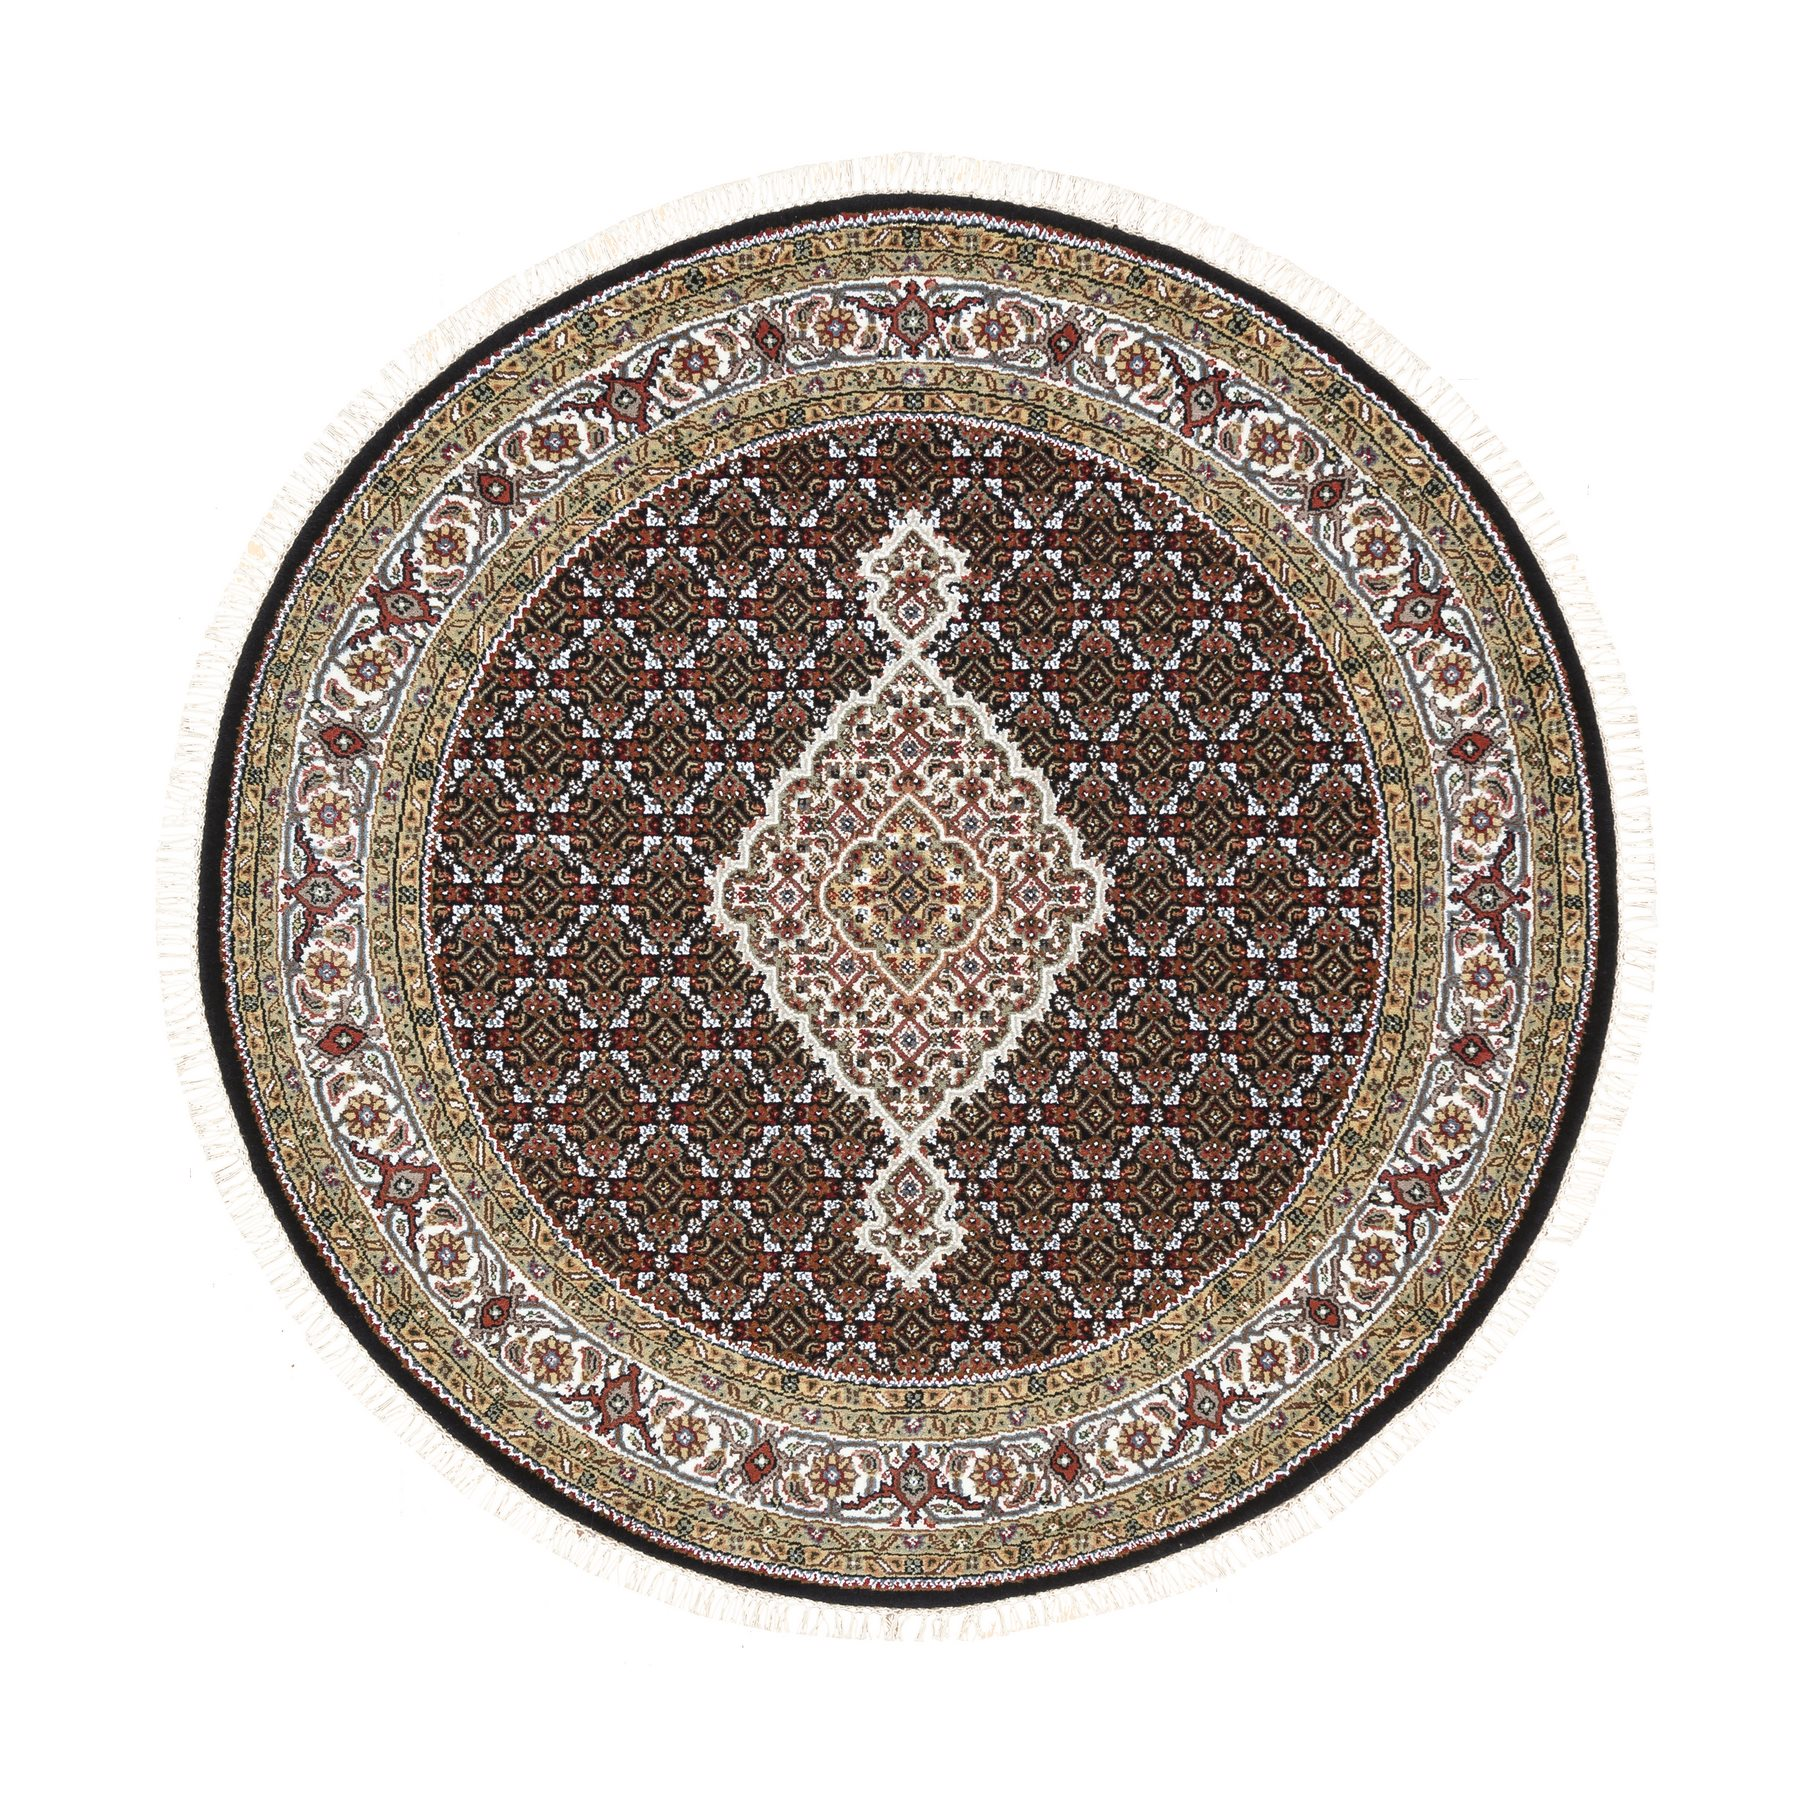 Pirniakan Collection Hand Knotted Black Rug No: 1125232